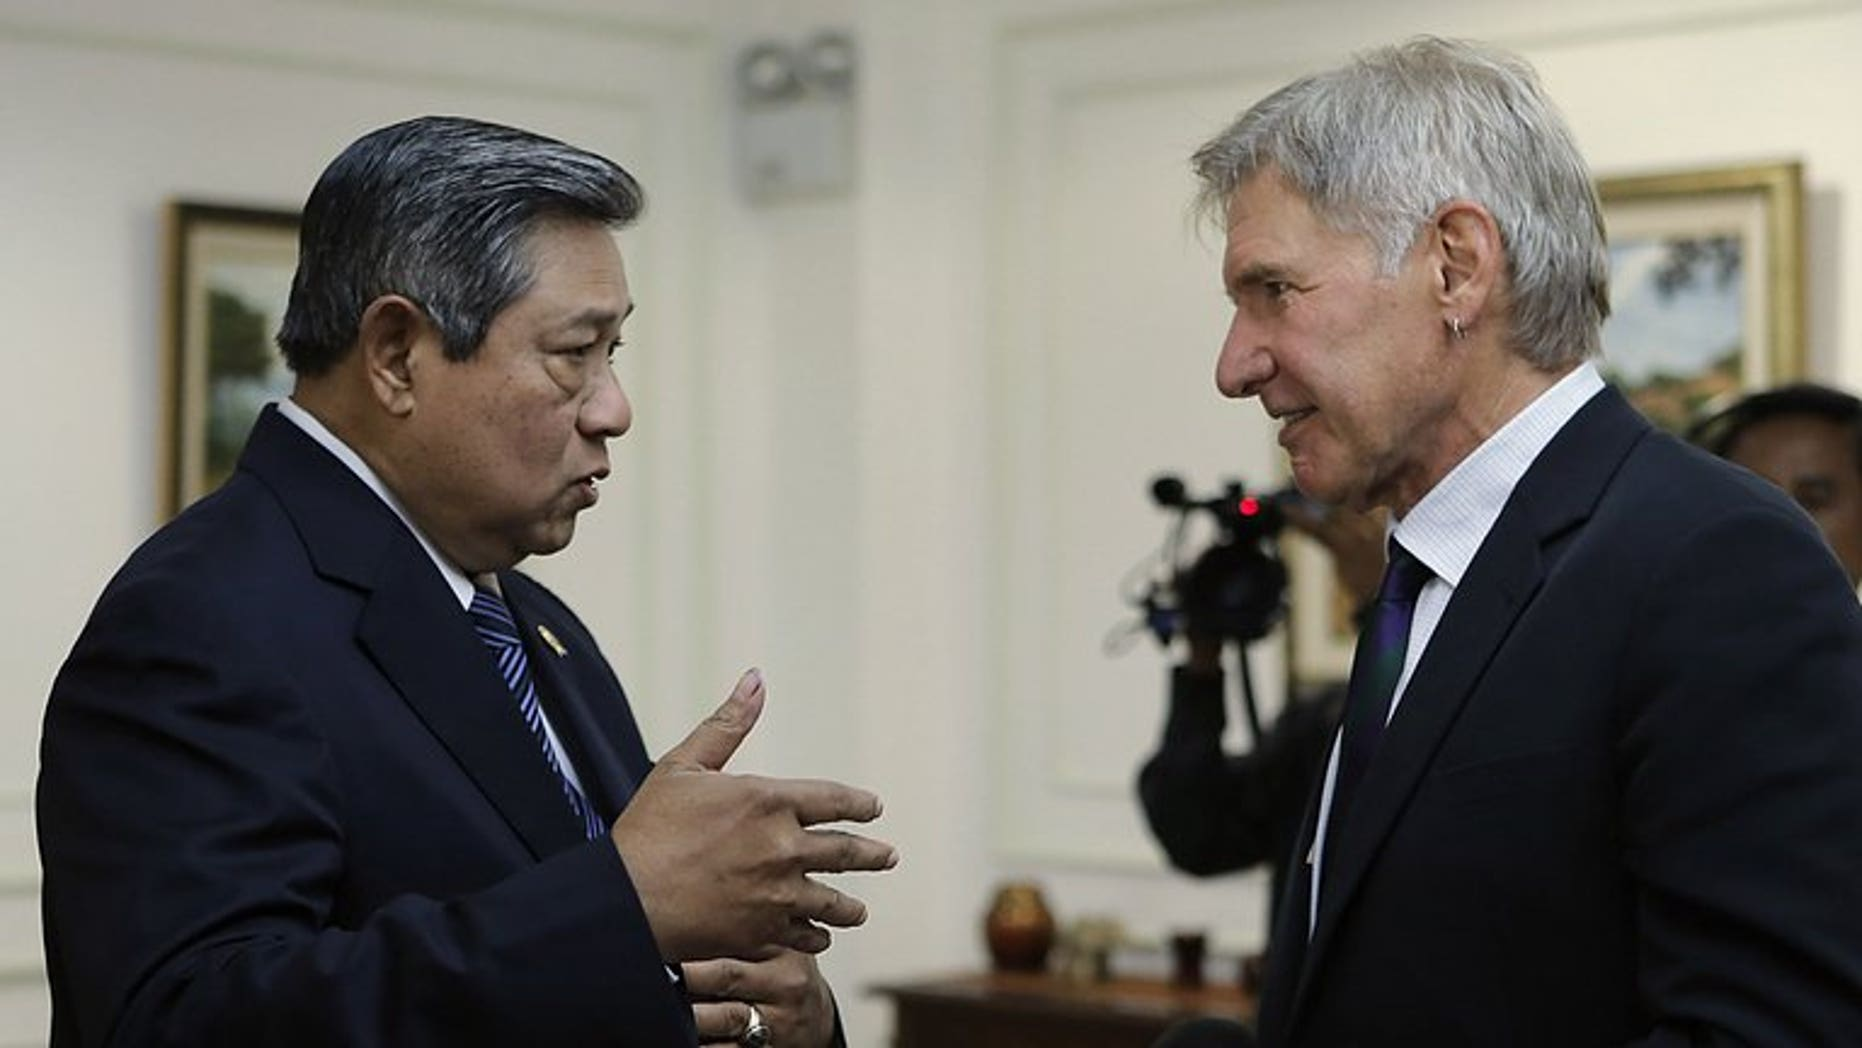 A photo released by the presidential palace on September 10, 2013, shows Indonesian President Susilo Bambang Yudhoyono (L) speaking to US actor Harrison Ford (R) during an interview at the presidential palace in Jakarta. The minister accused Ford of subjecting him to a rude interview on climate change.